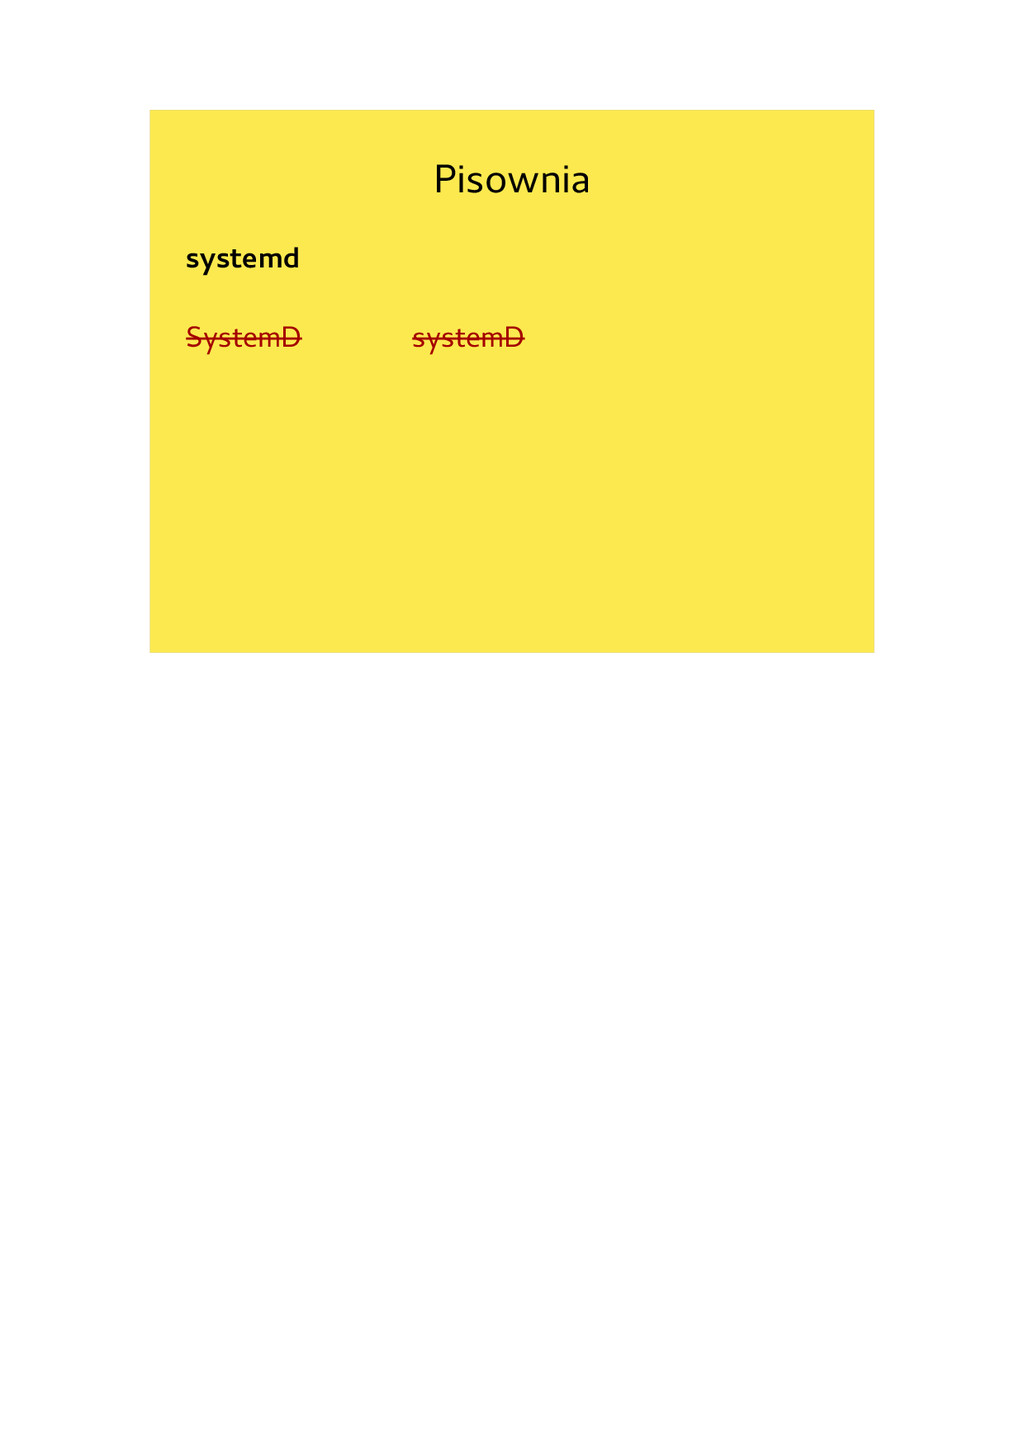 Pisownia systemd SystemD systemD